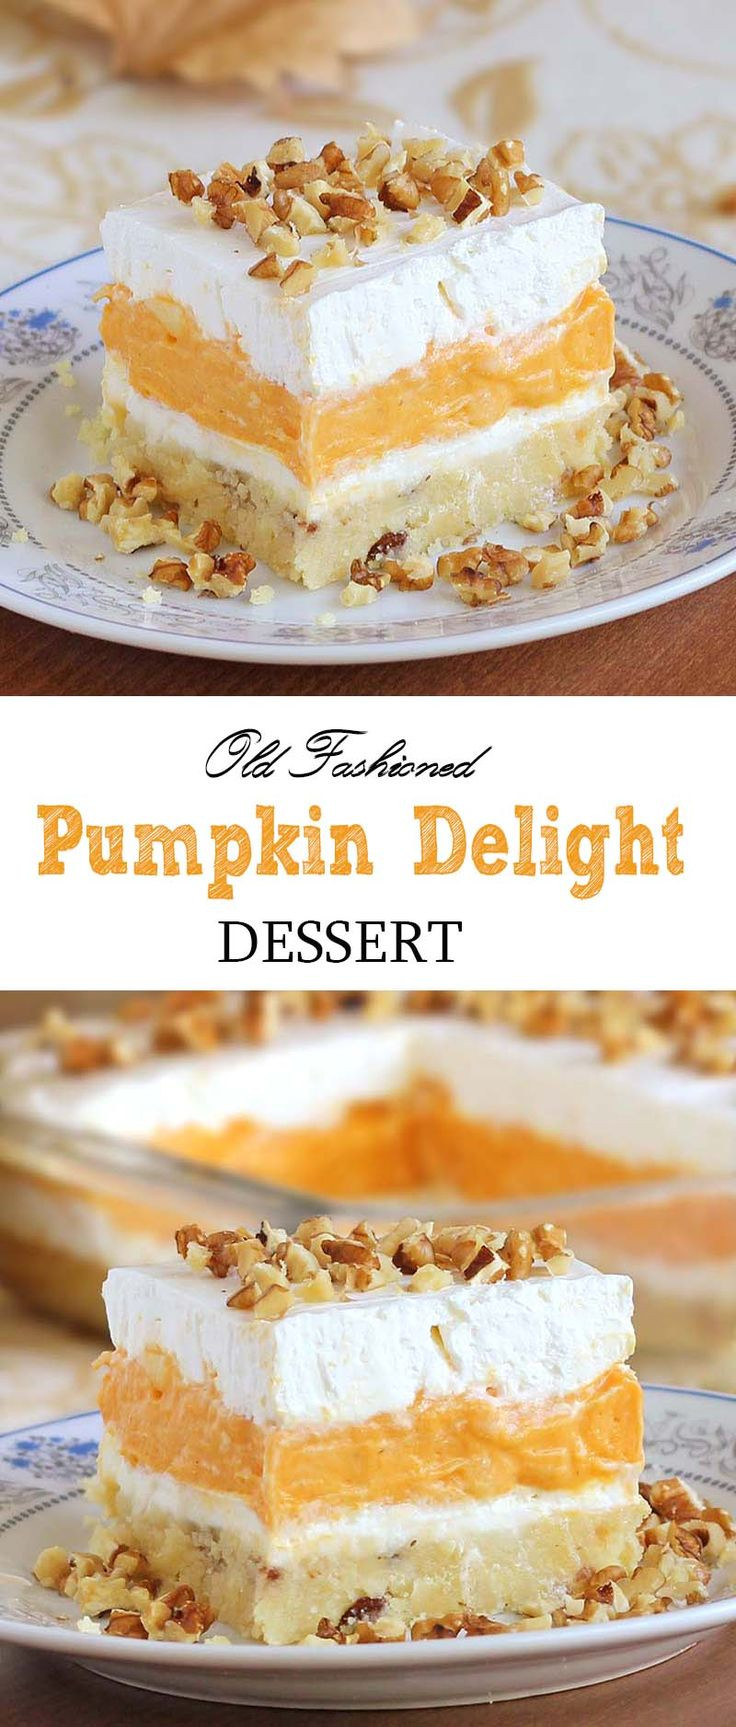 Pumpkin Dessert Pinterest  17 Best ideas about Pumpkin Delight on Pinterest